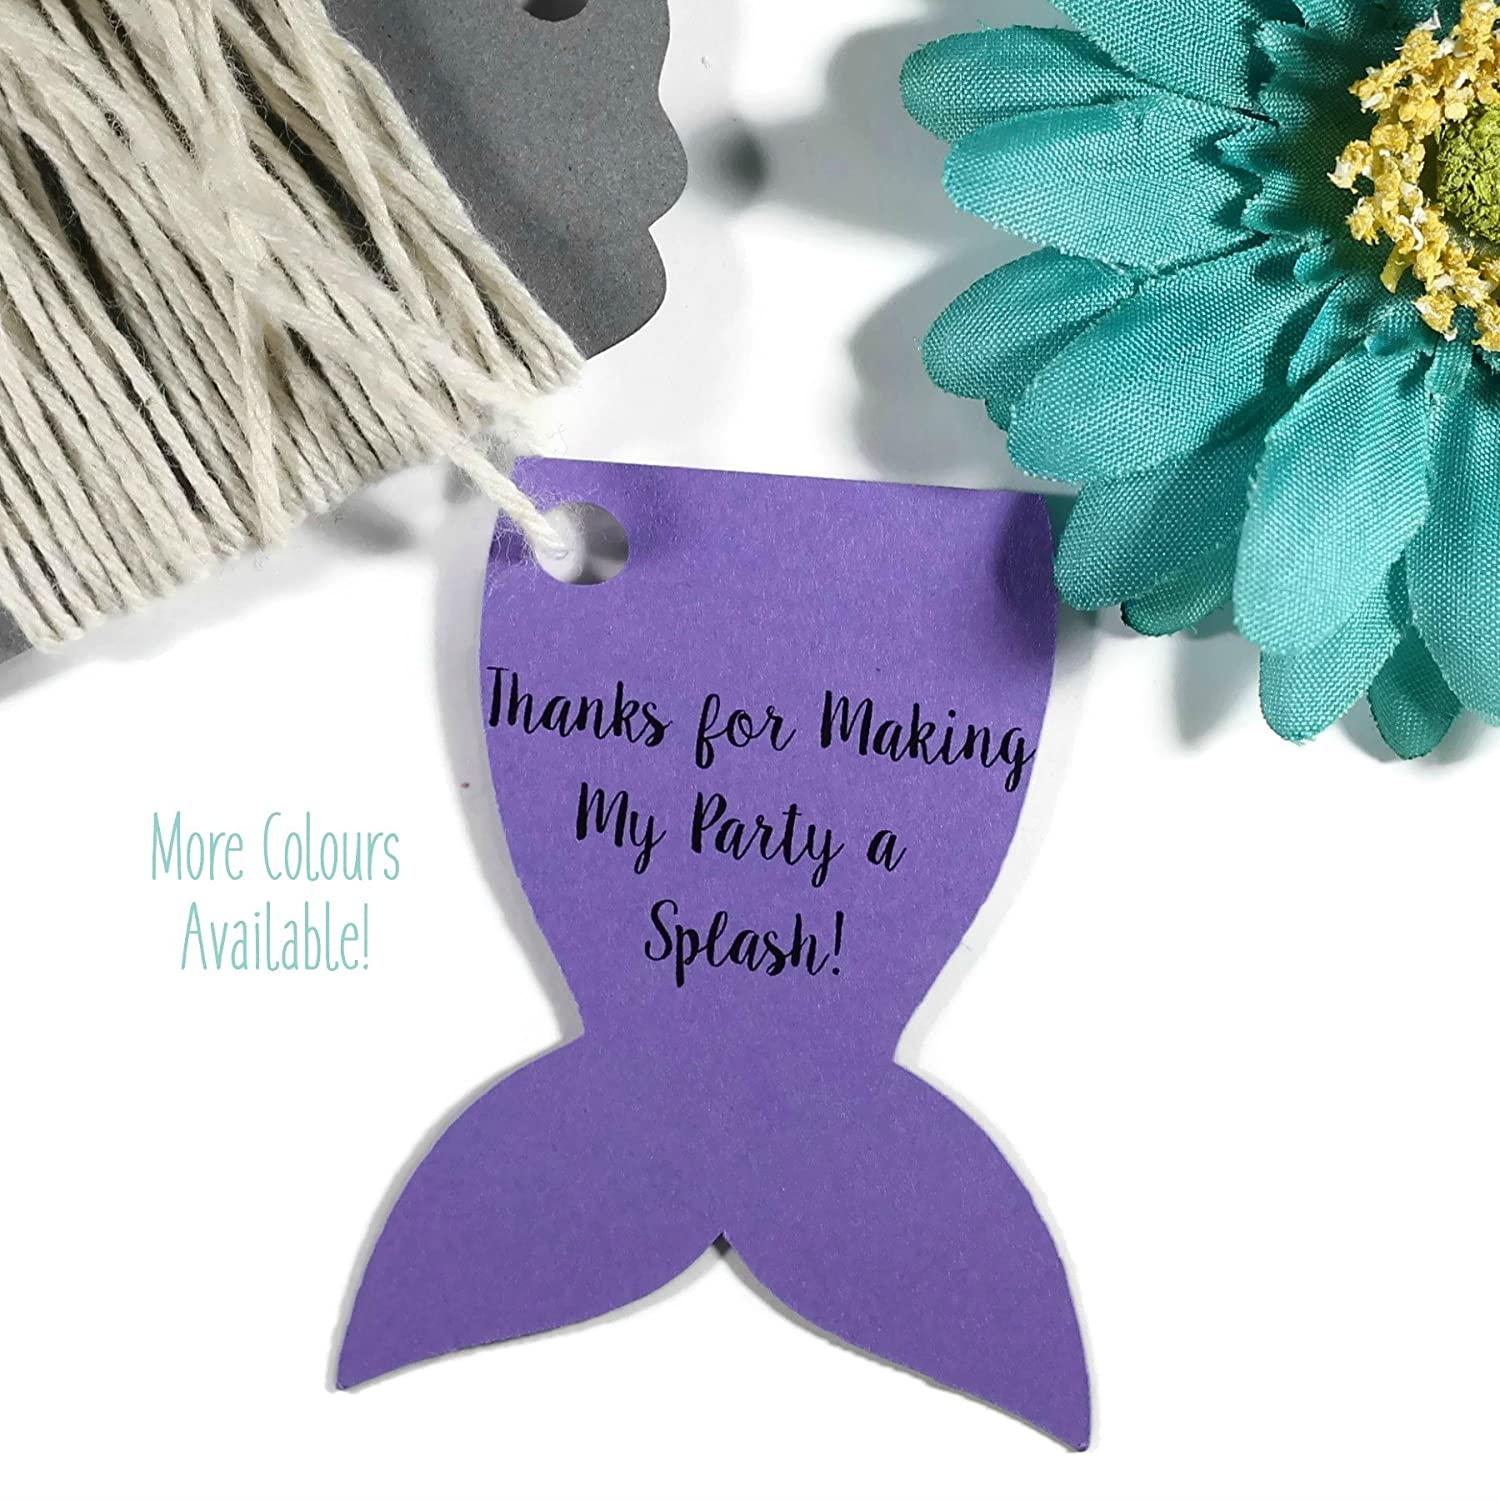 Purple Mermaid Tail Party Favor Tags - Thanks for Making My Party a Splash (Set of 20)